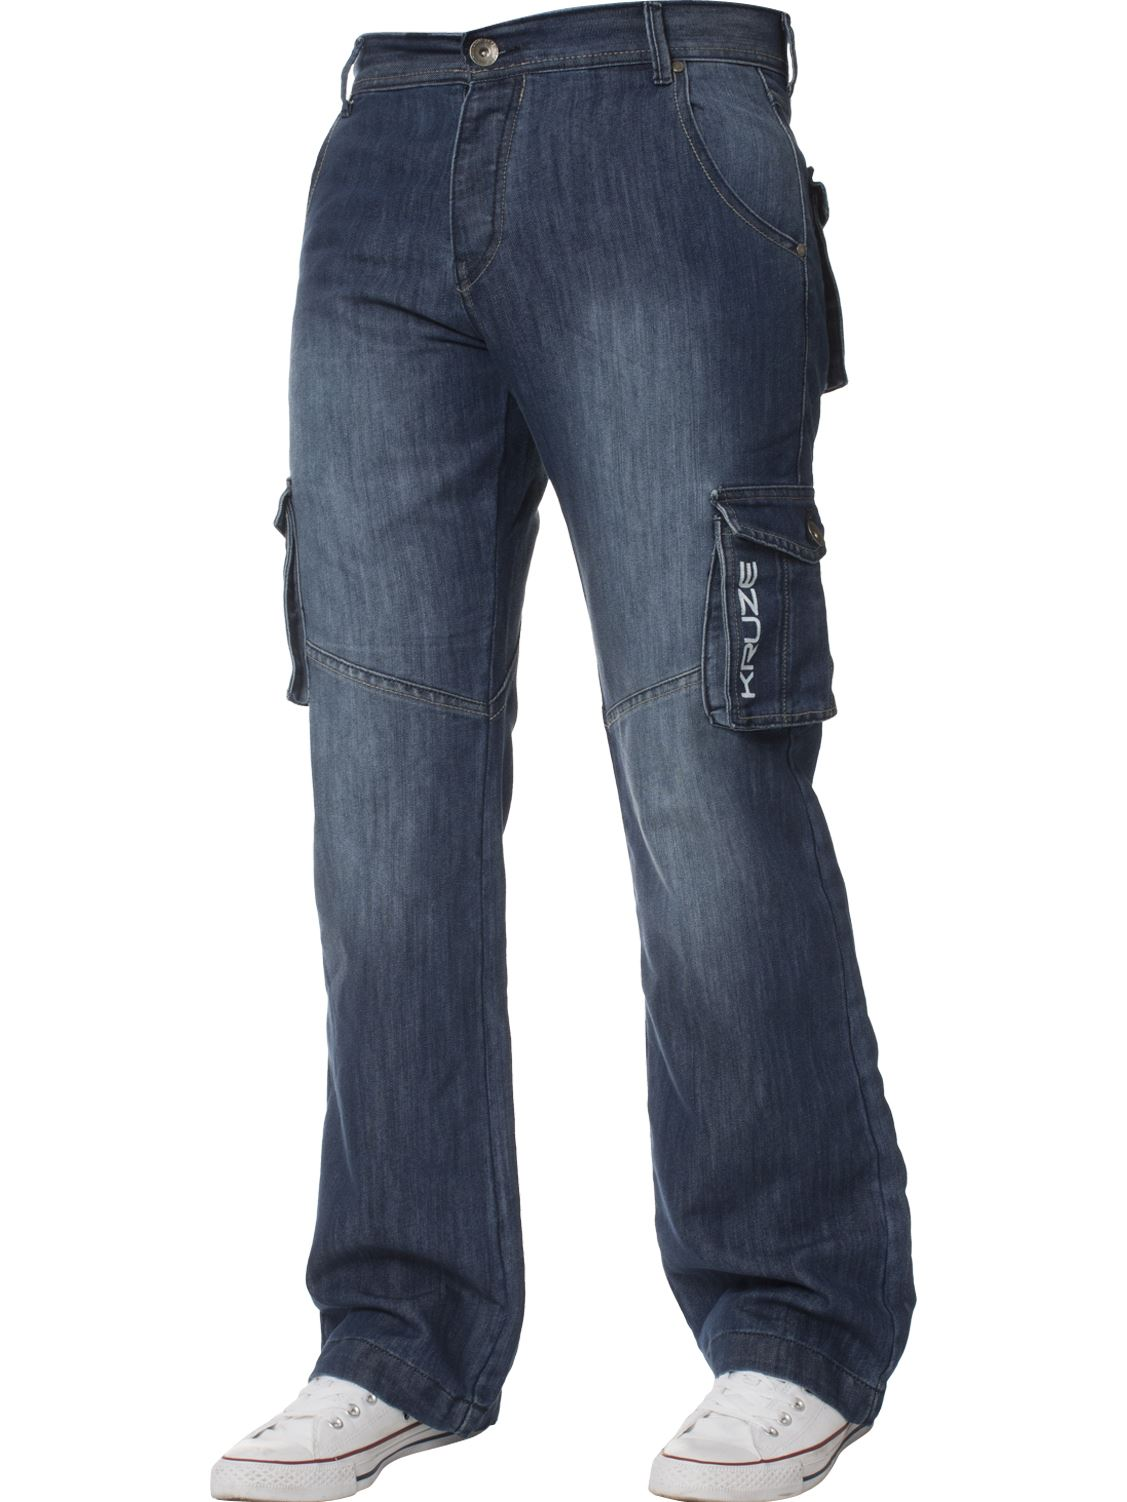 KRUZE-Mens-Combat-Jeans-Casual-Cargo-Work-Pants-Denim-Trousers-All-Waist-Sizes thumbnail 14